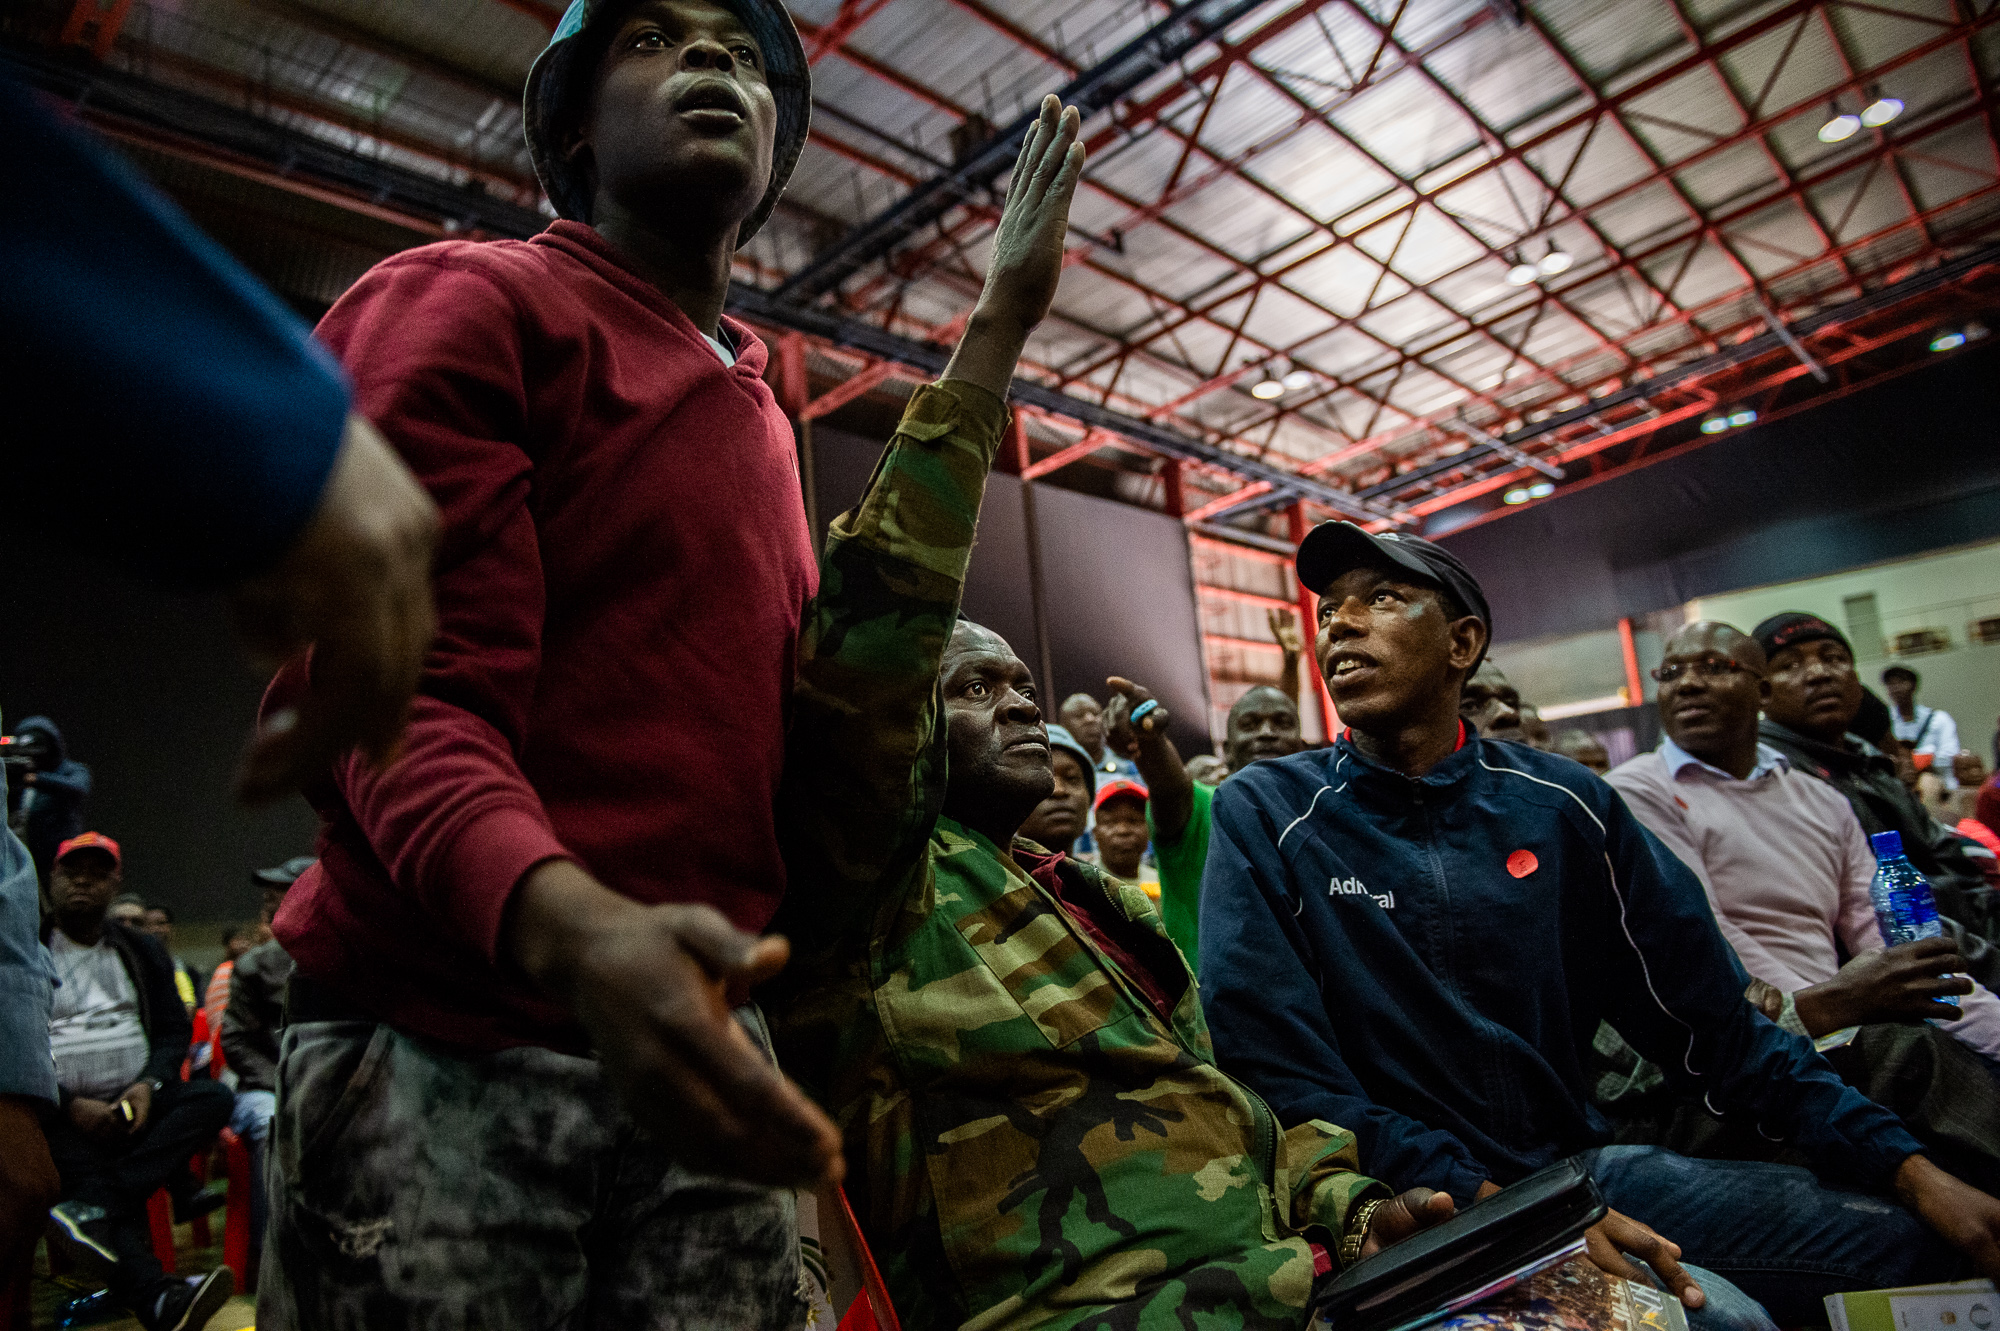 South Africa, Pretoria, 28.07.2018 // The land debate is often highly emotional. During a public hearing in the Heartfelt Arena in Pretoria, people of the audience get upset about one of the presented opinions. // Lucas Bäuml